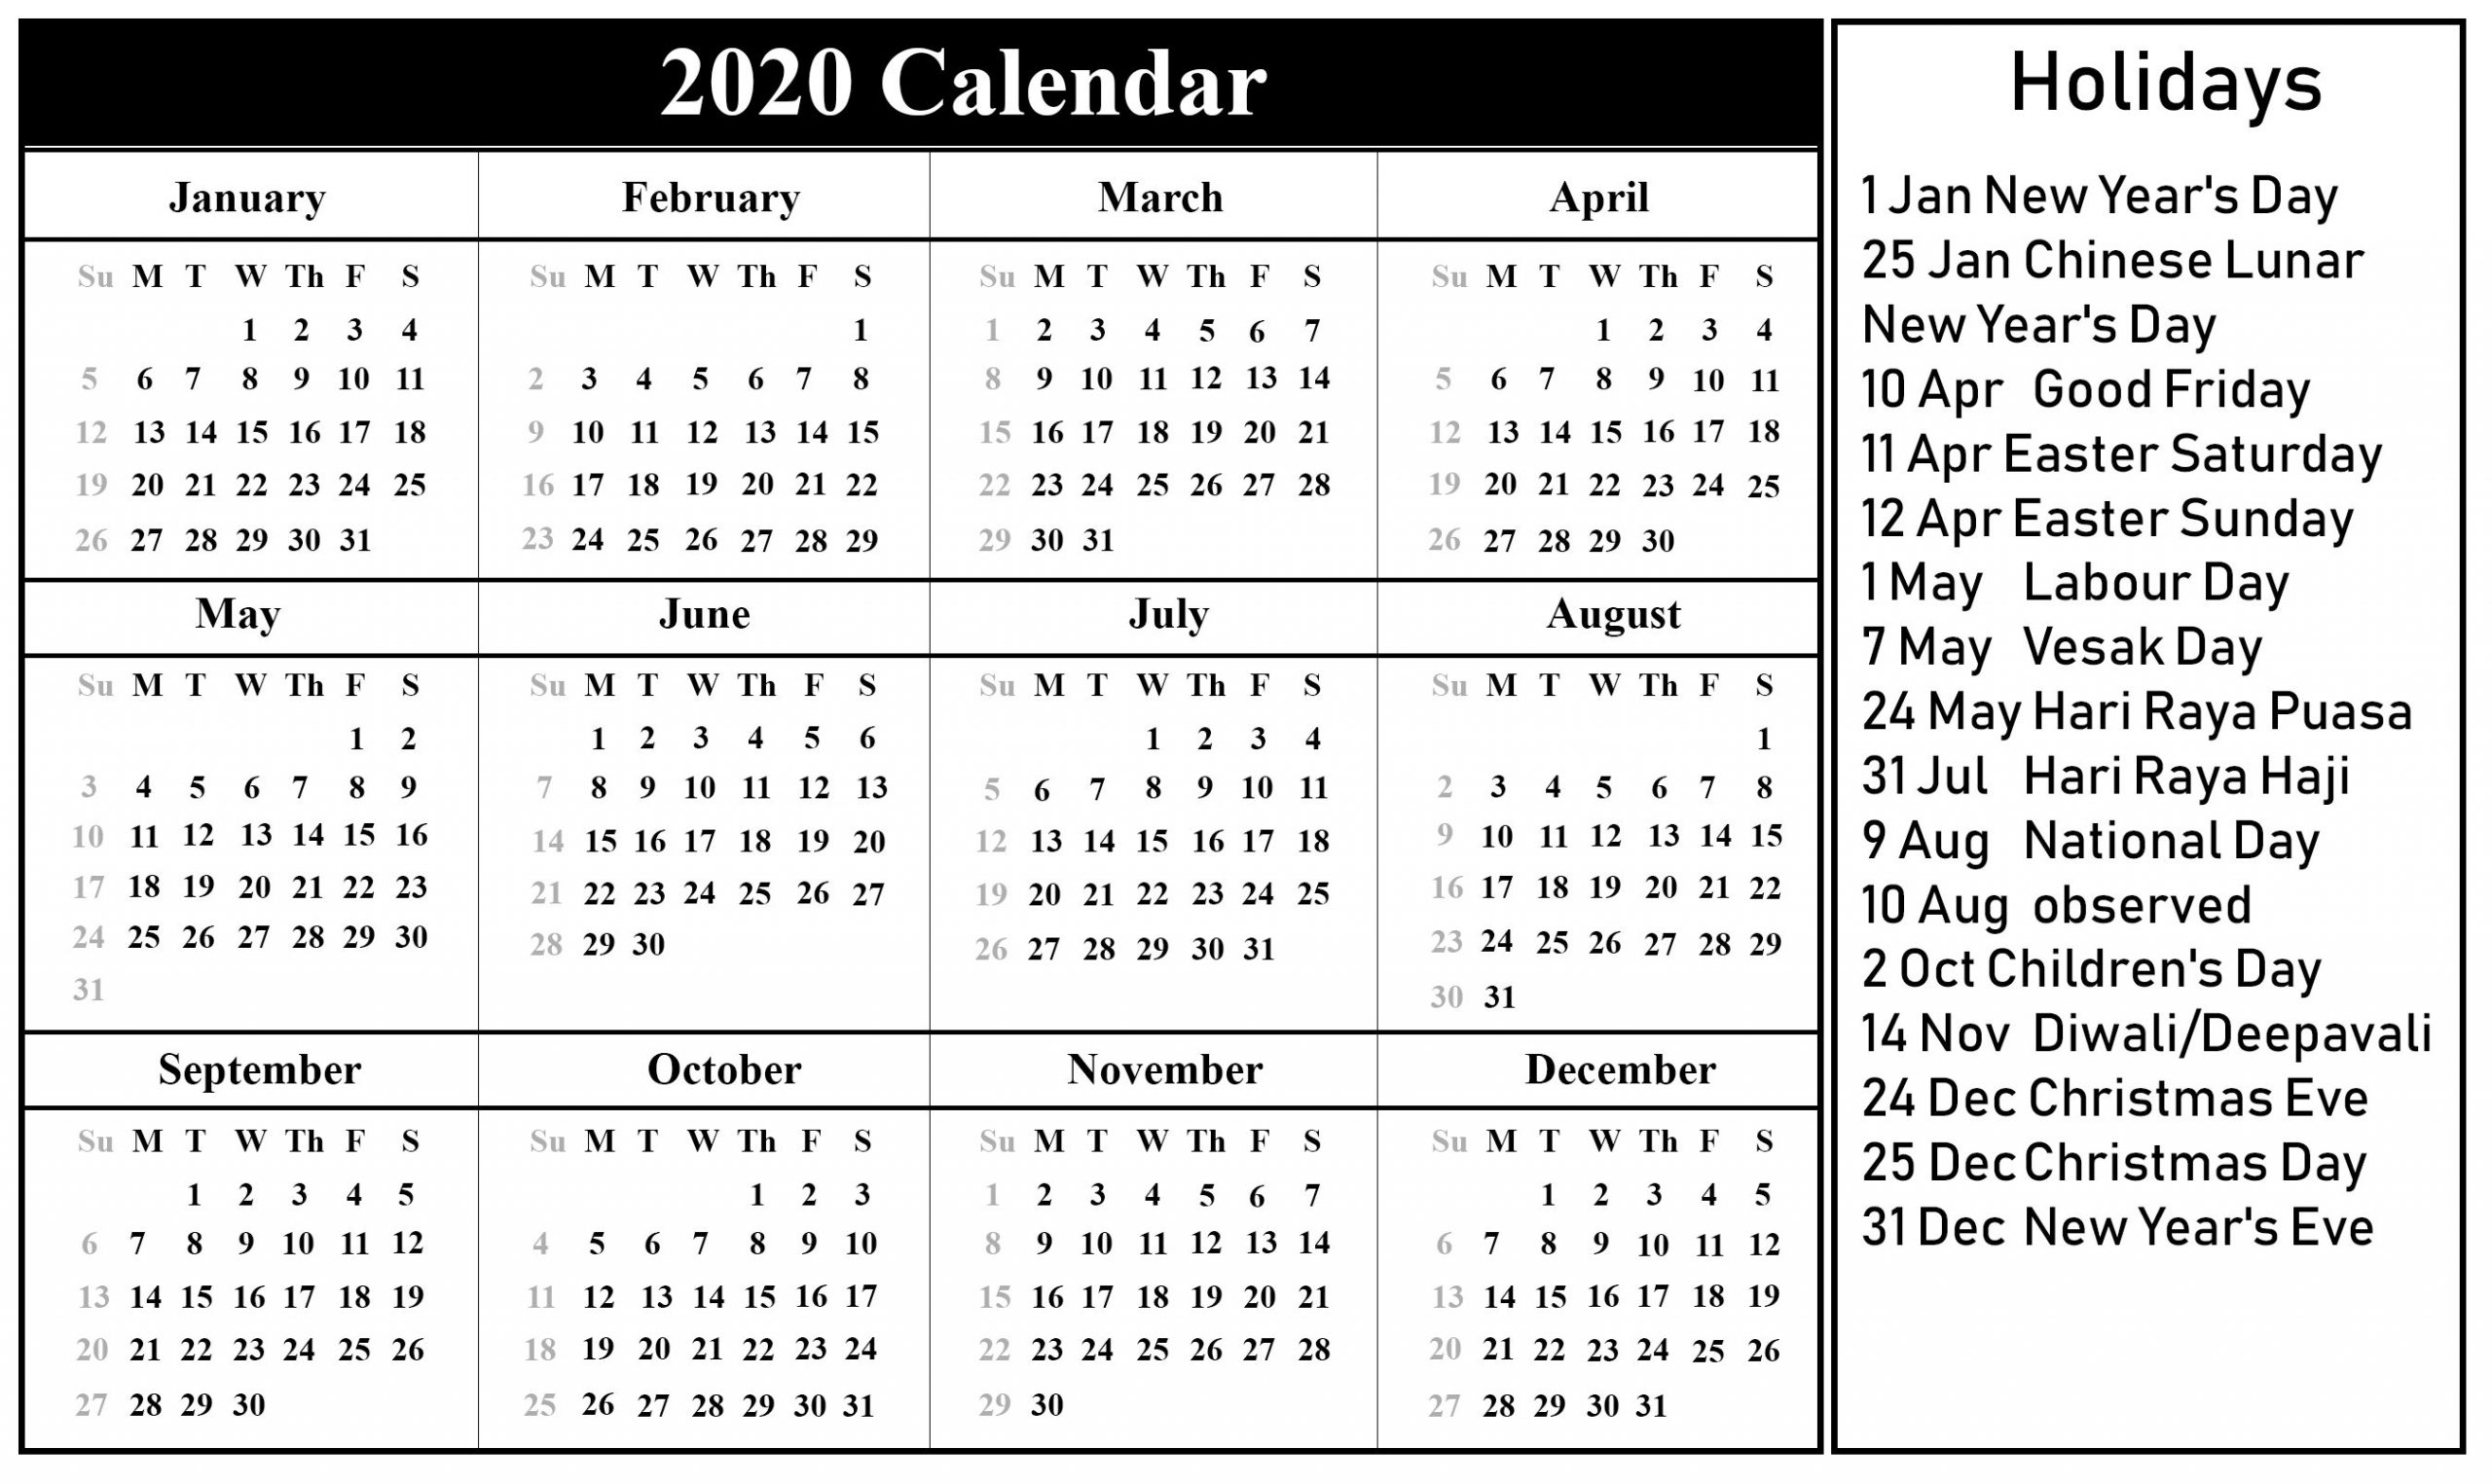 Extraordinary 2020 Calendar Printable With Holidays In 2020